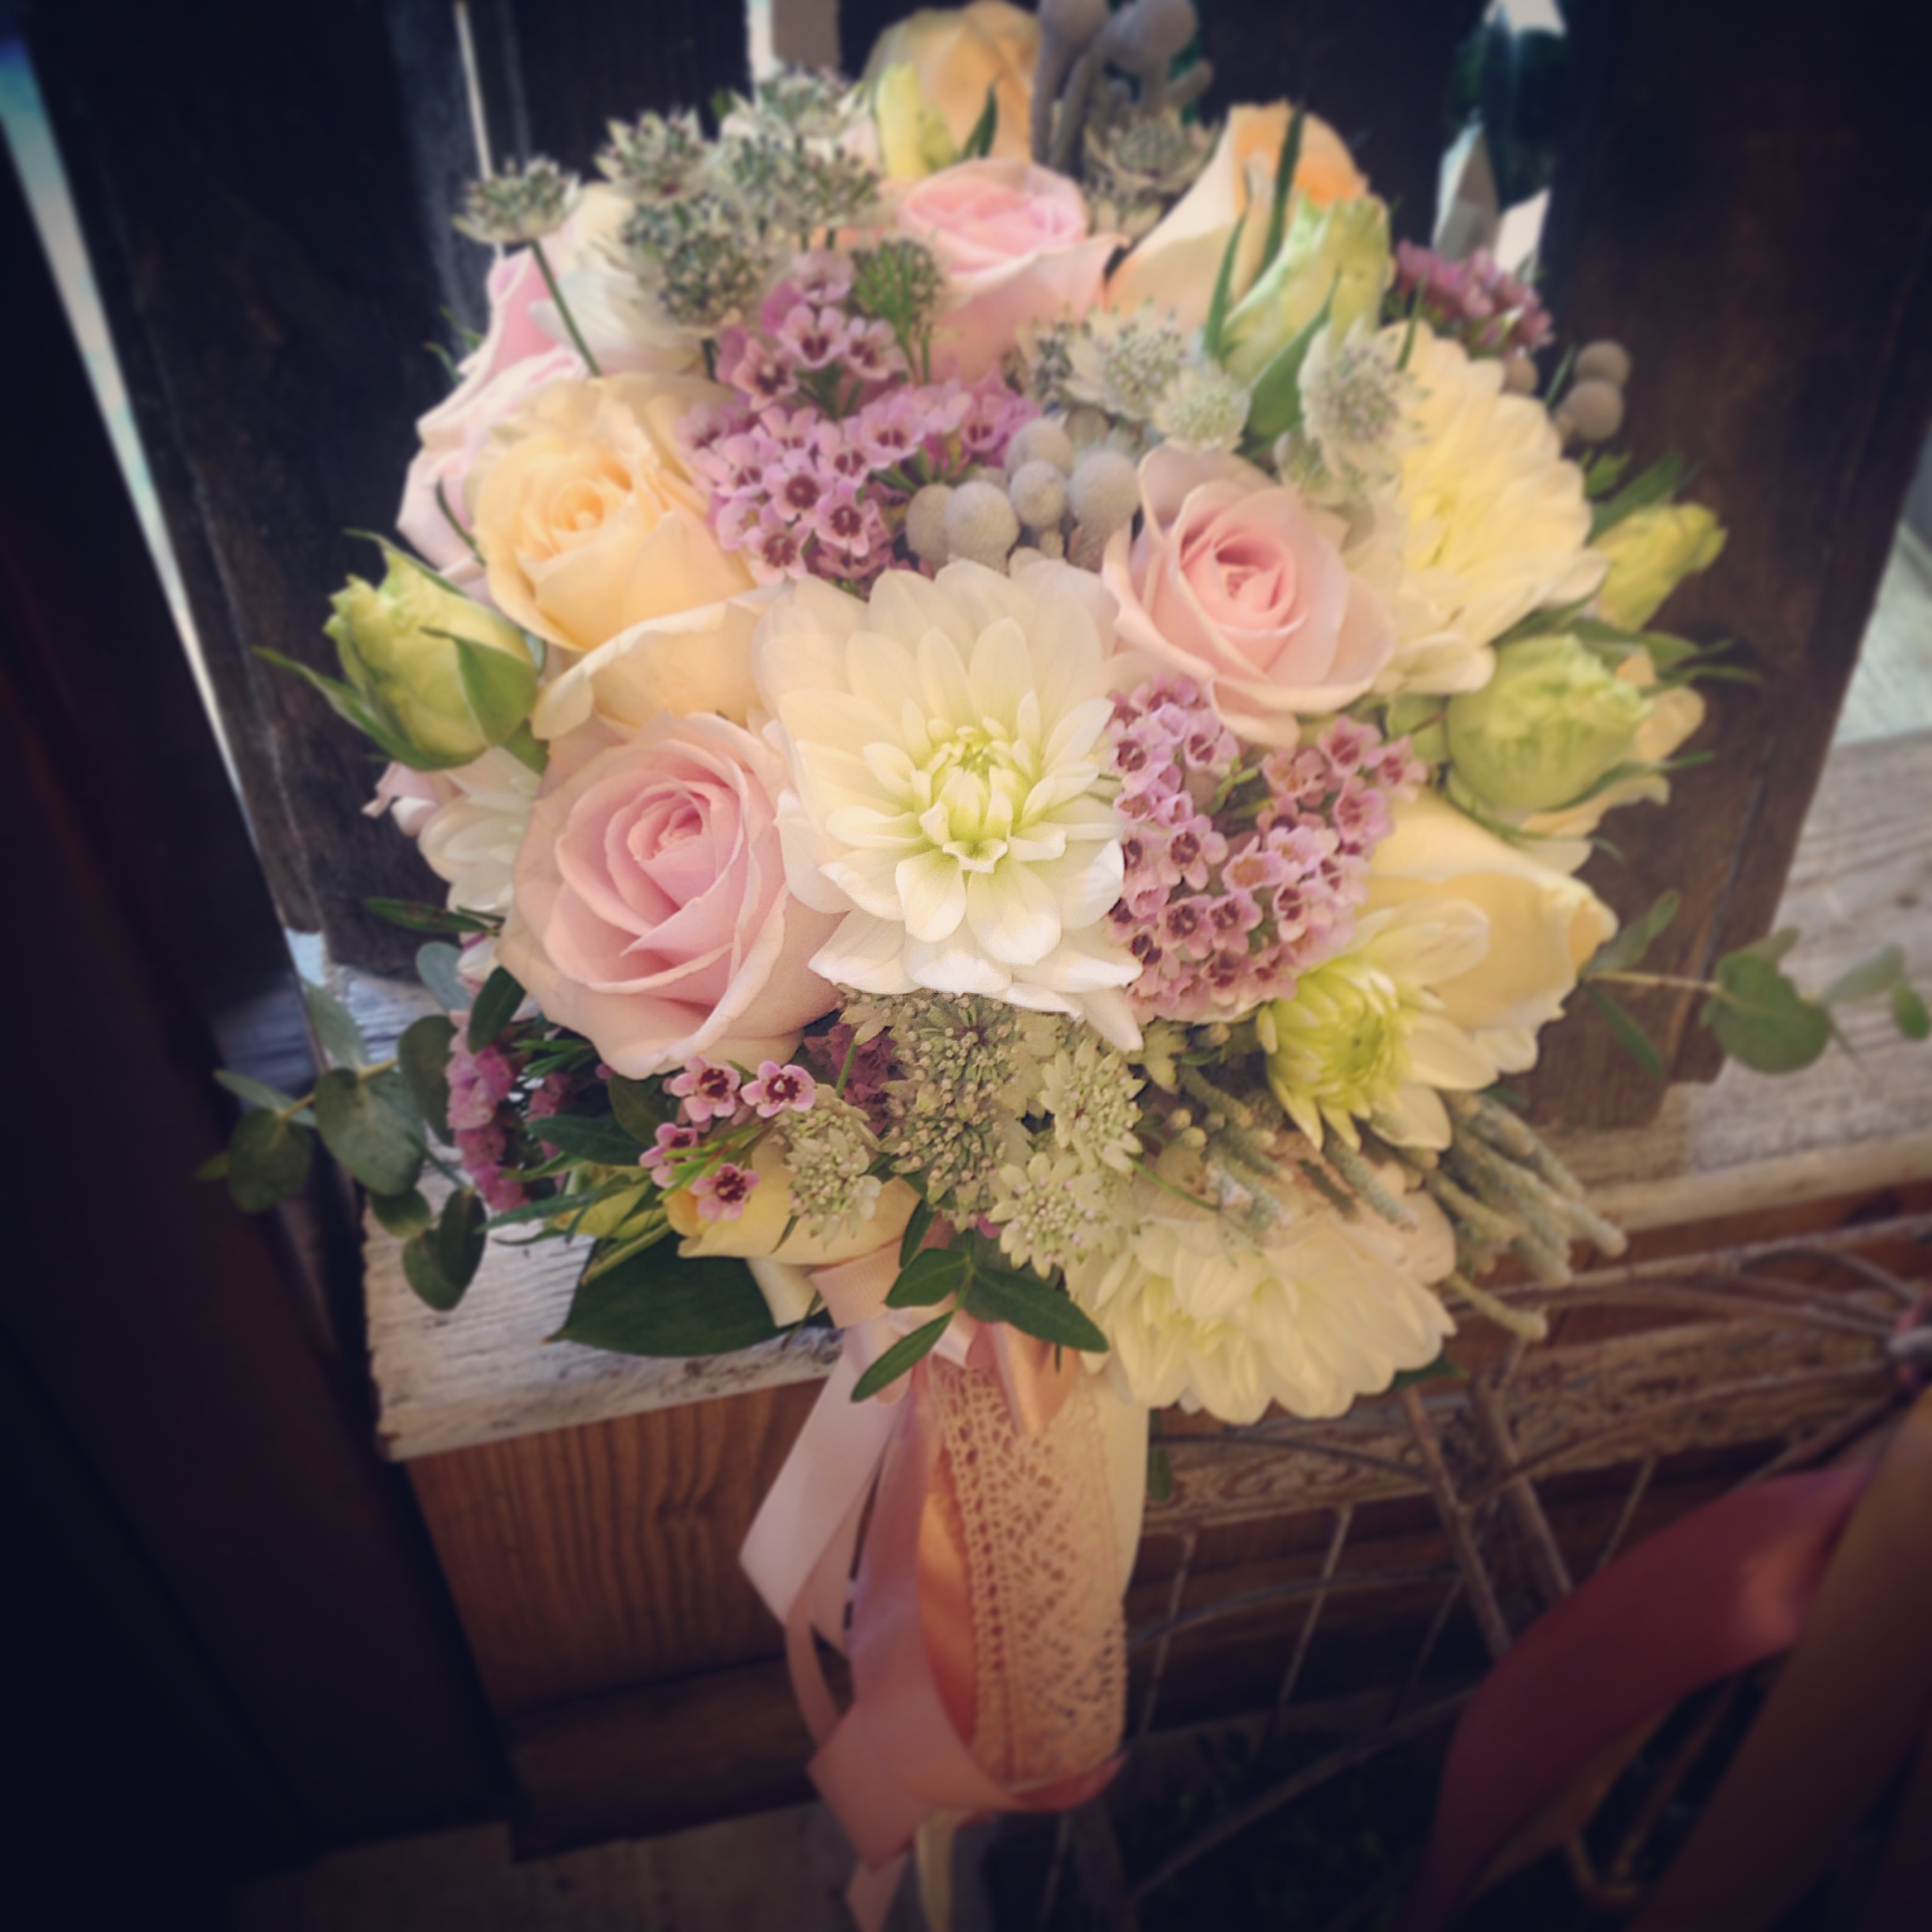 bouquet sposa dalie e rose